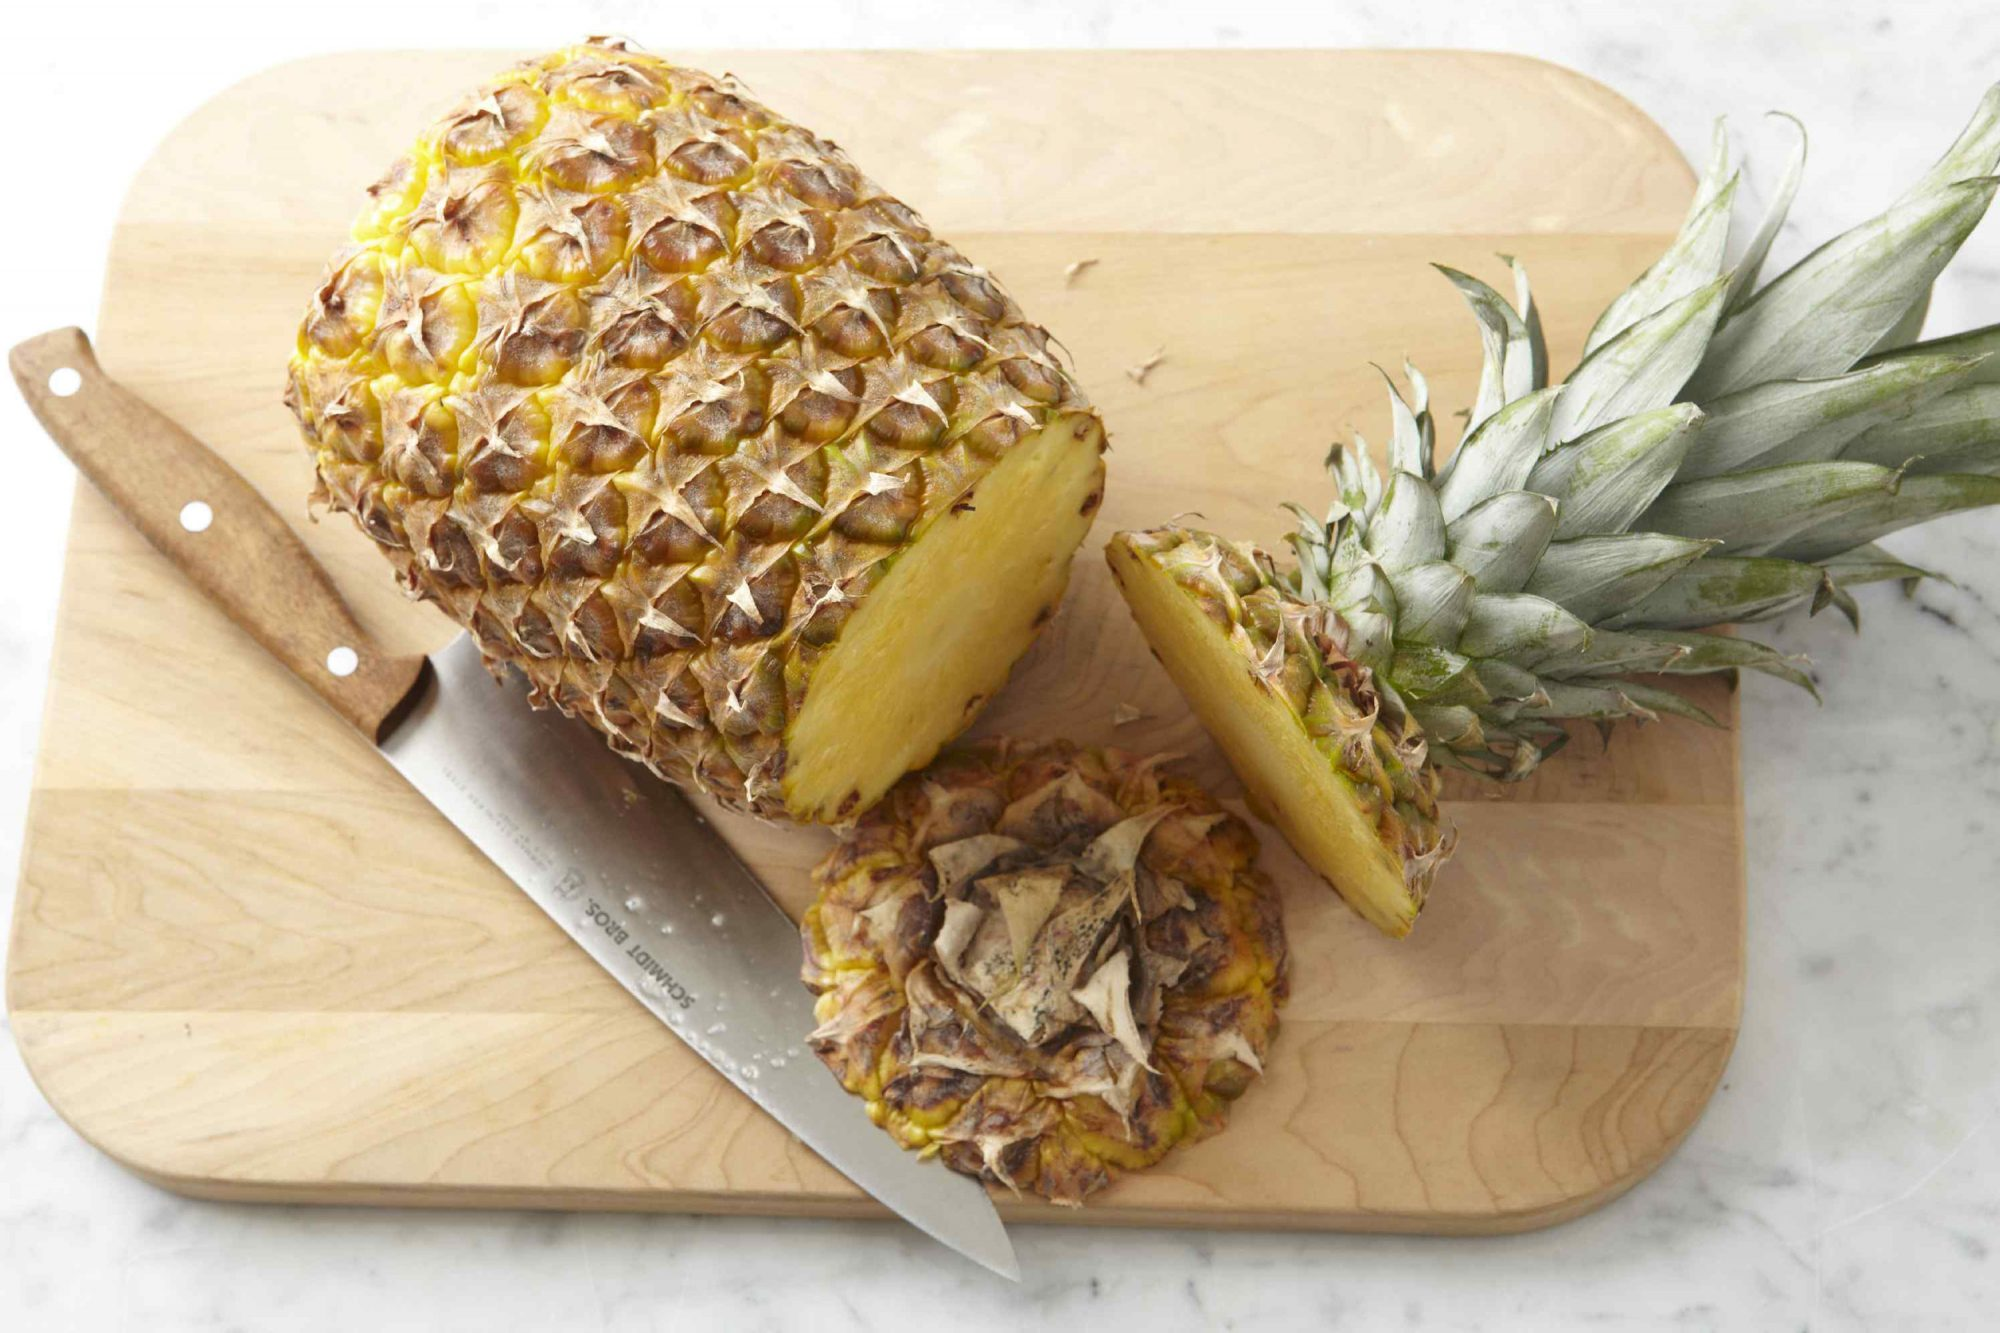 Pineapple on cutting board with knife